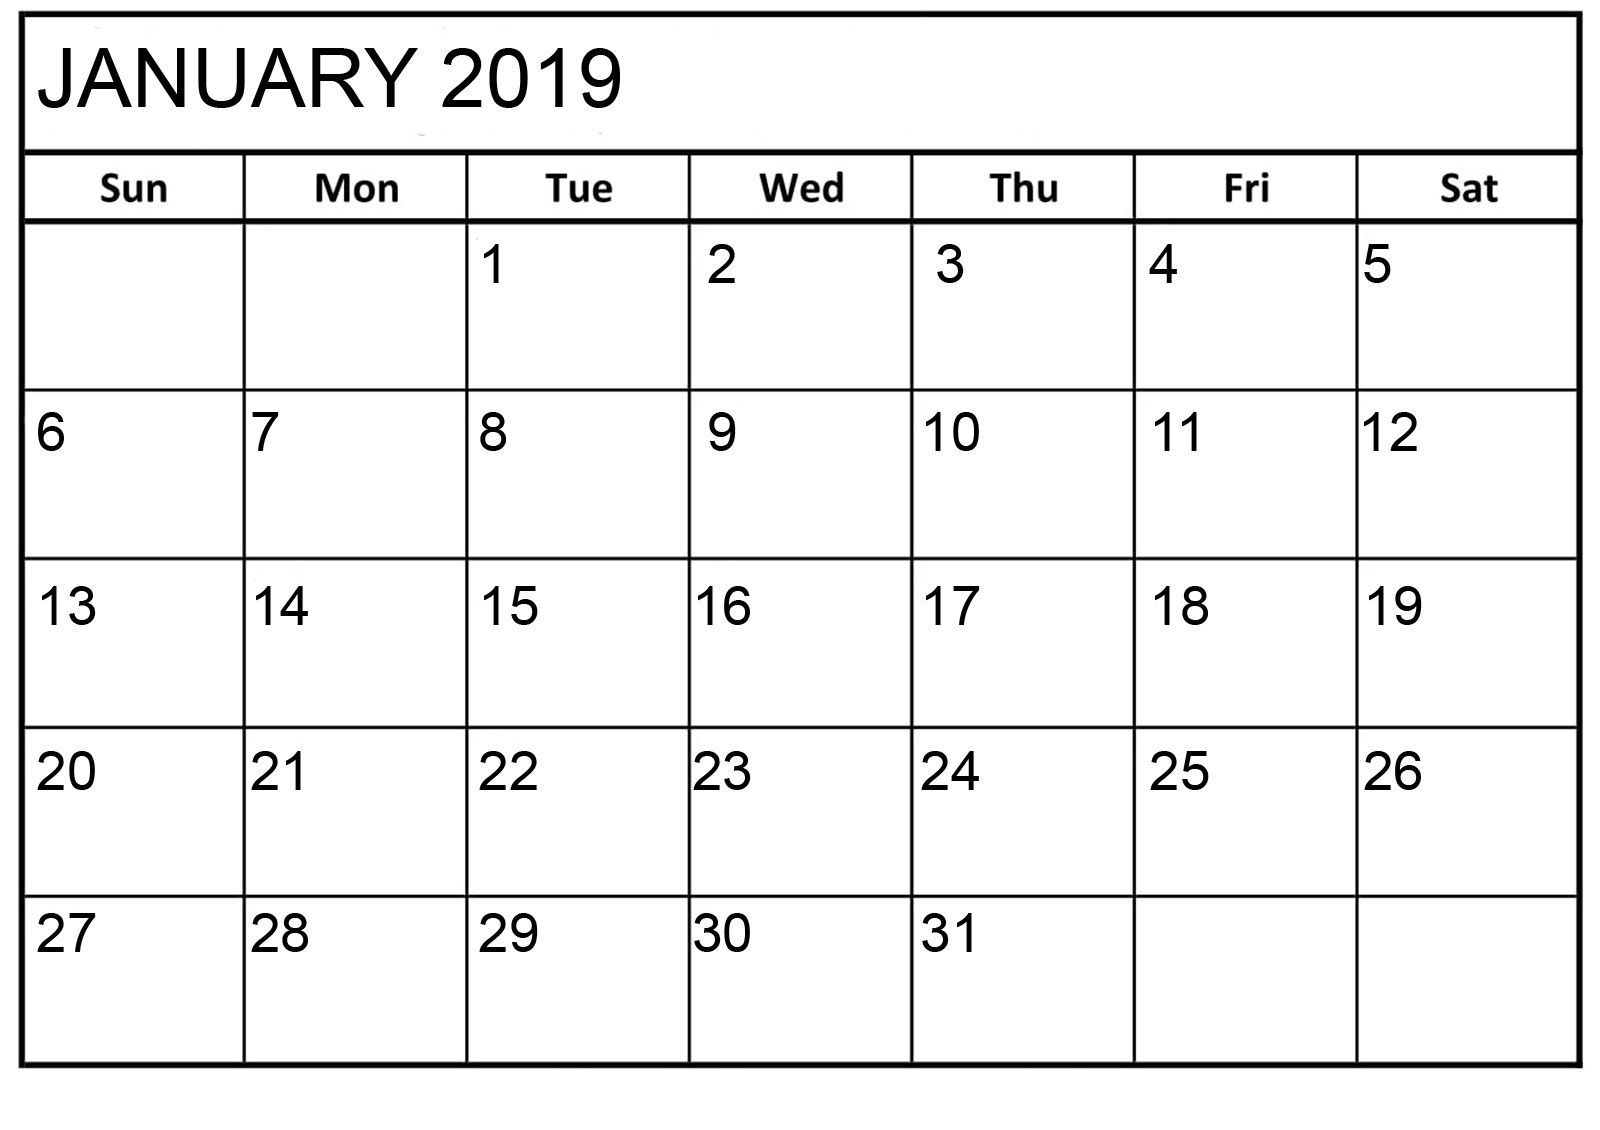 January 2019 Calendar Printable Html | January 2019 Calendar regarding Printable Calendar Monthly 2019-2020 Free 11X17 Large Boxes